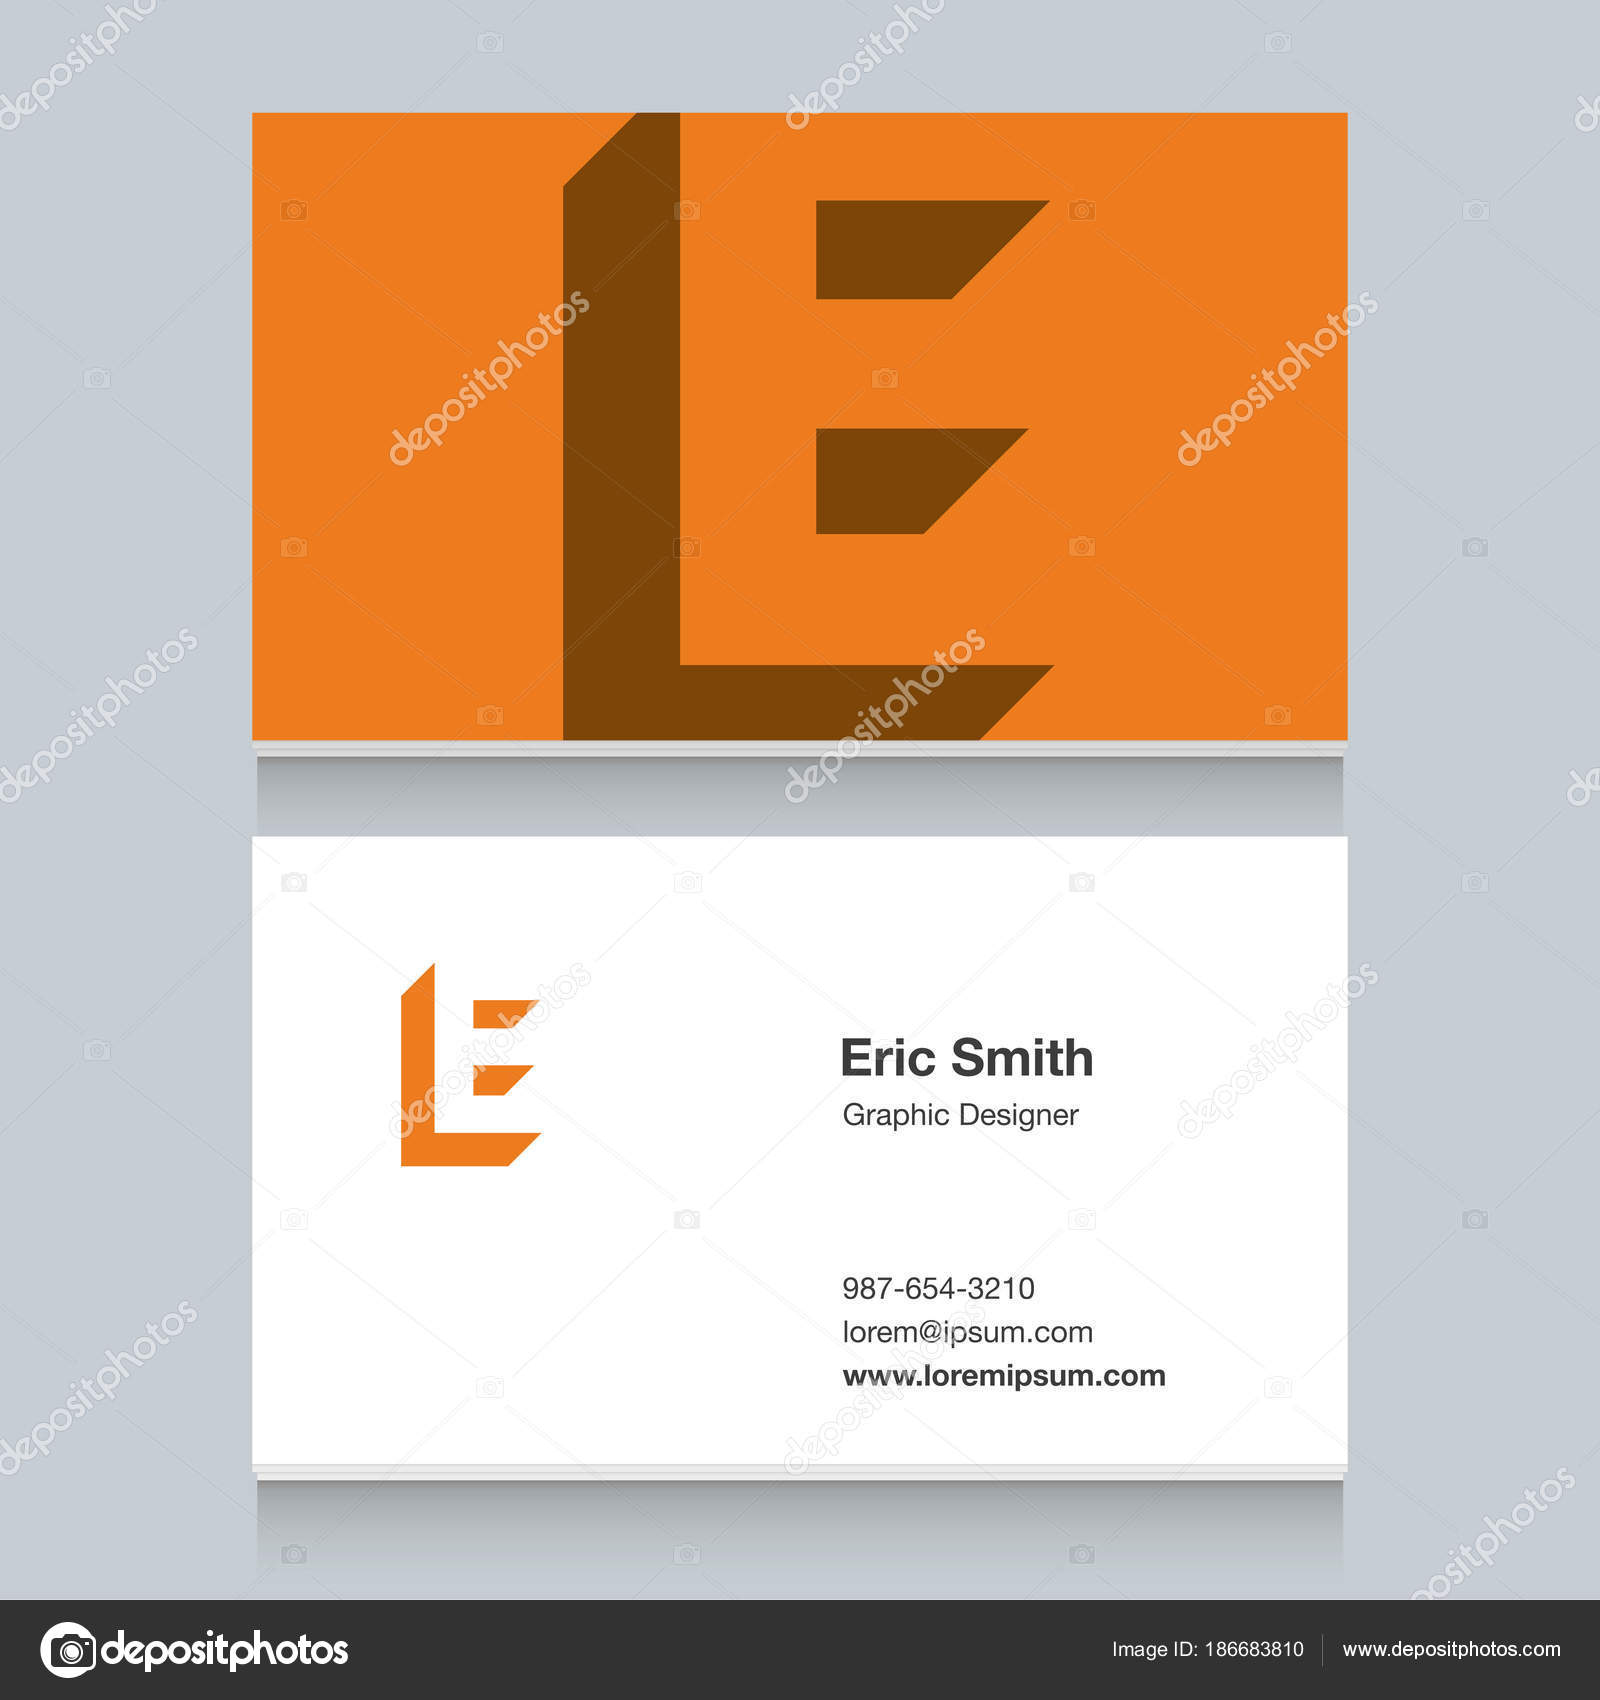 Logo alphabet letter business card template vector graphic design logo alphabet letter e with business card template vector graphic design elements for company logo vector by thecorner spiritdancerdesigns Choice Image